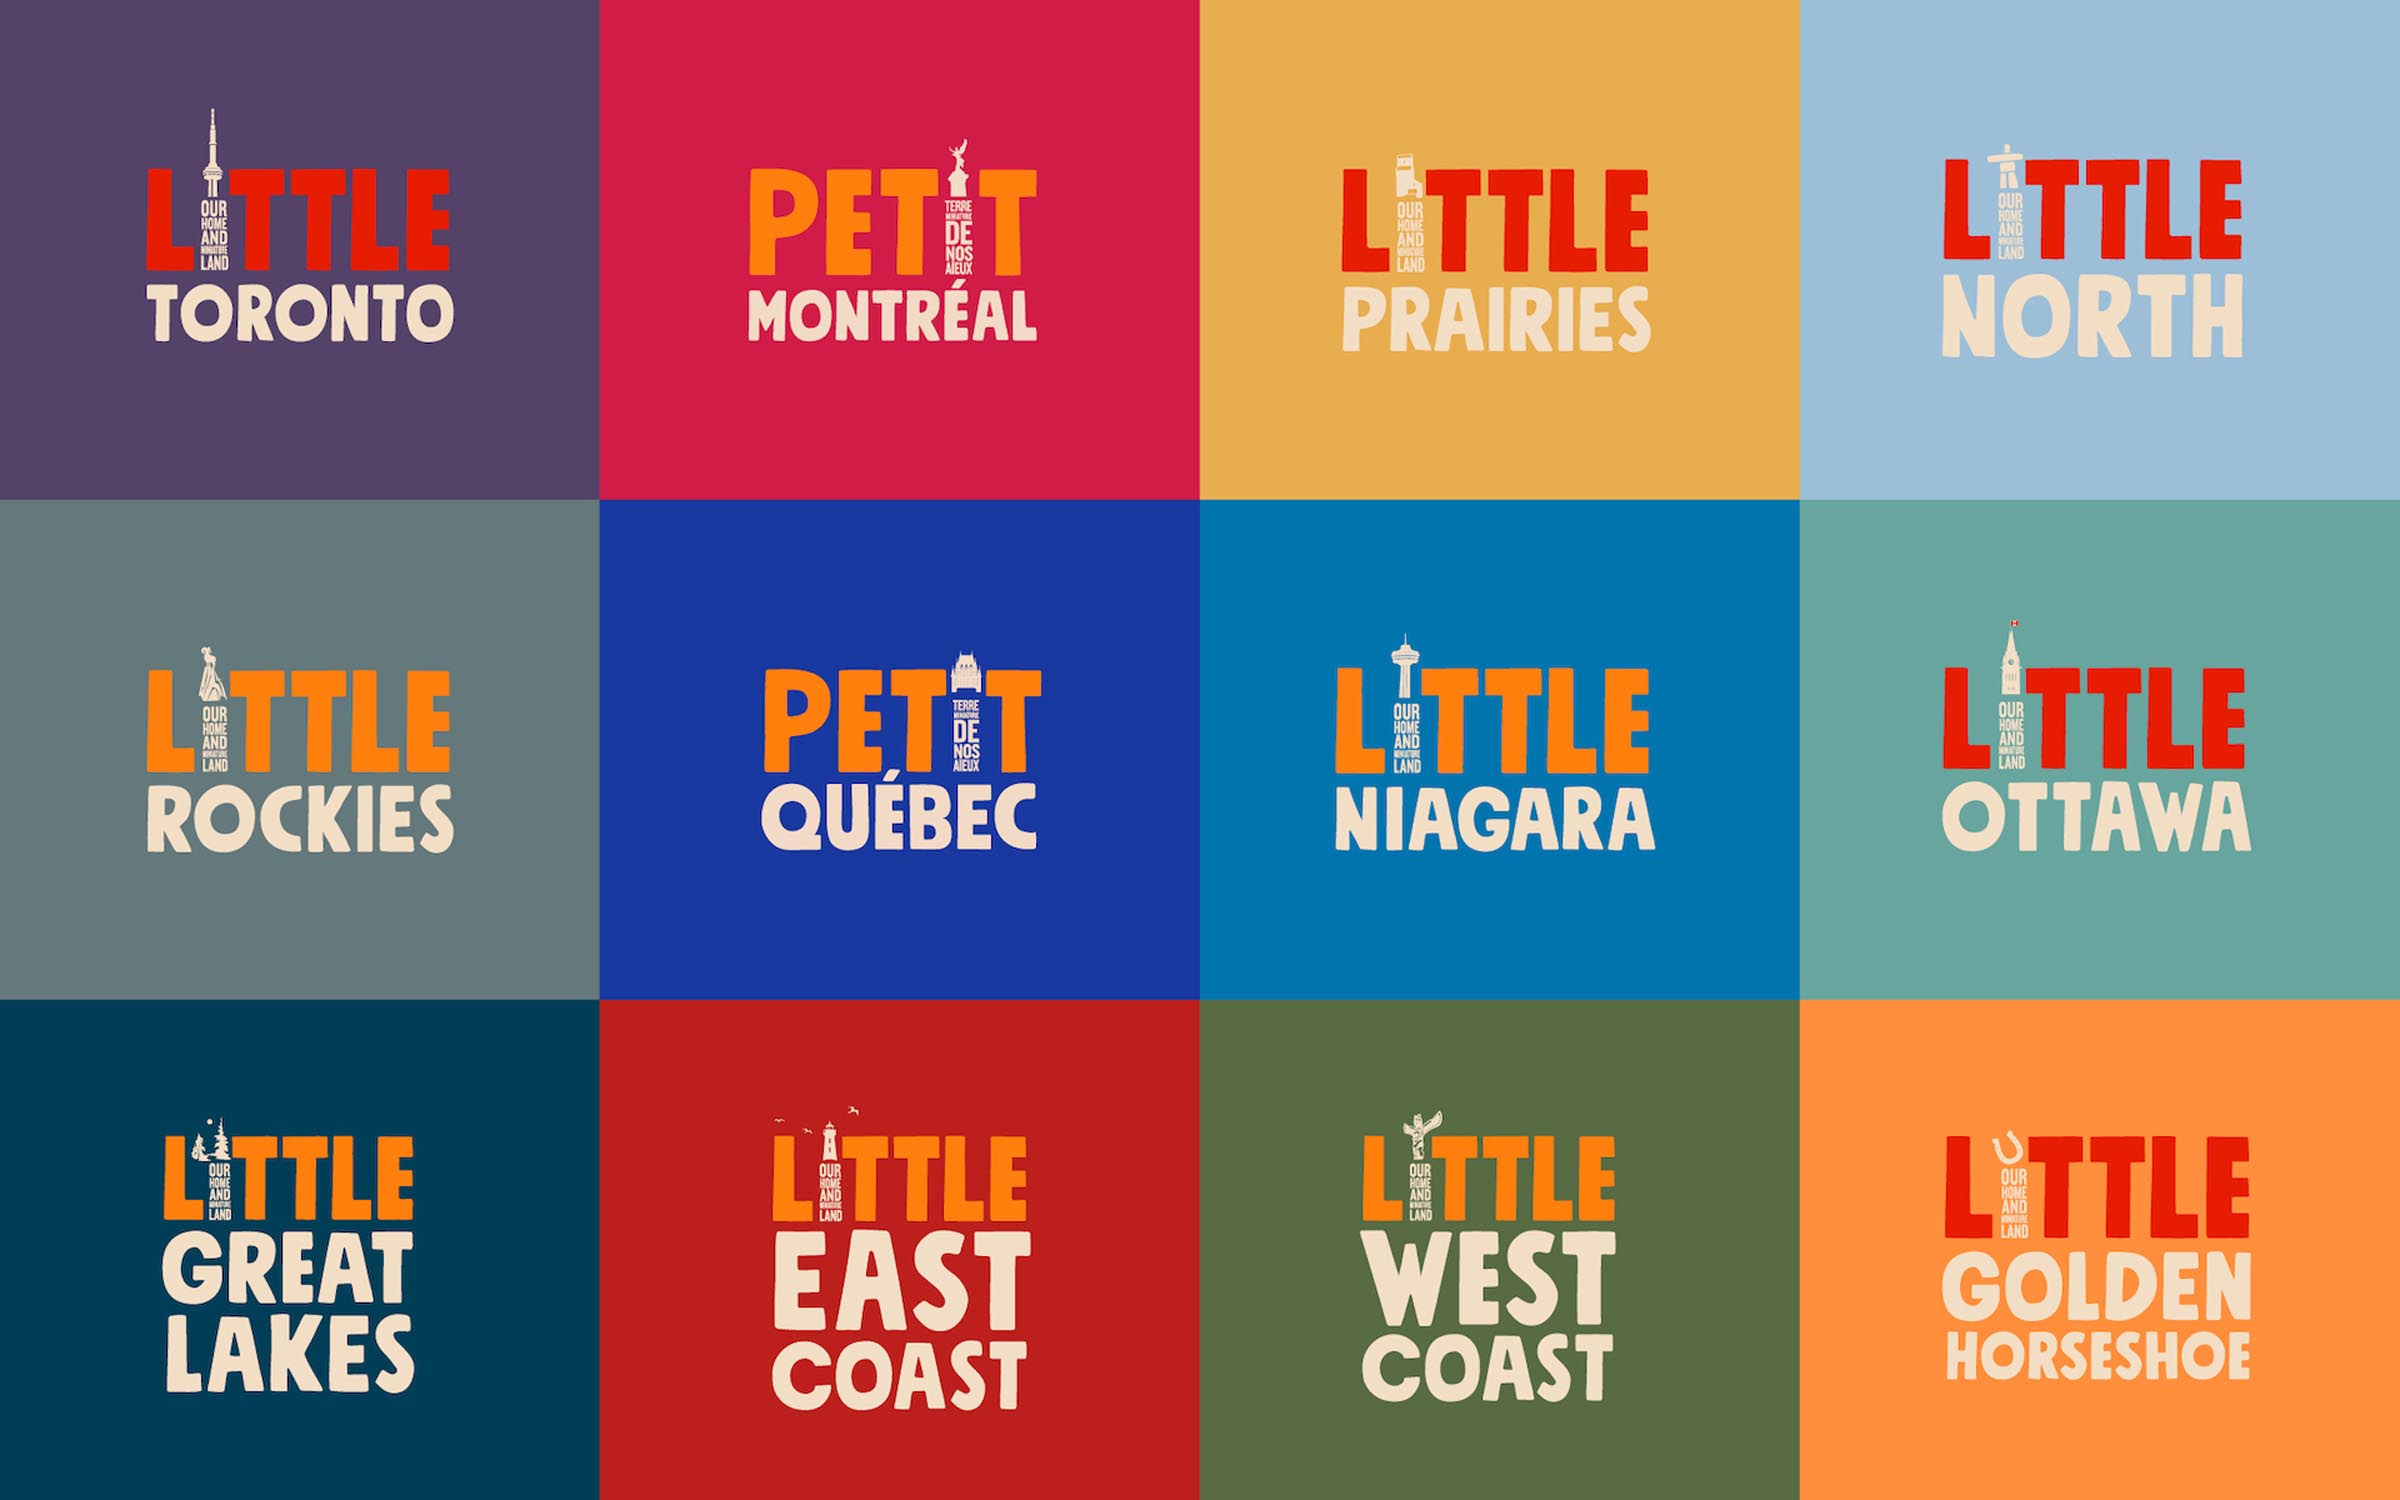 Little Canada logo treatments by province